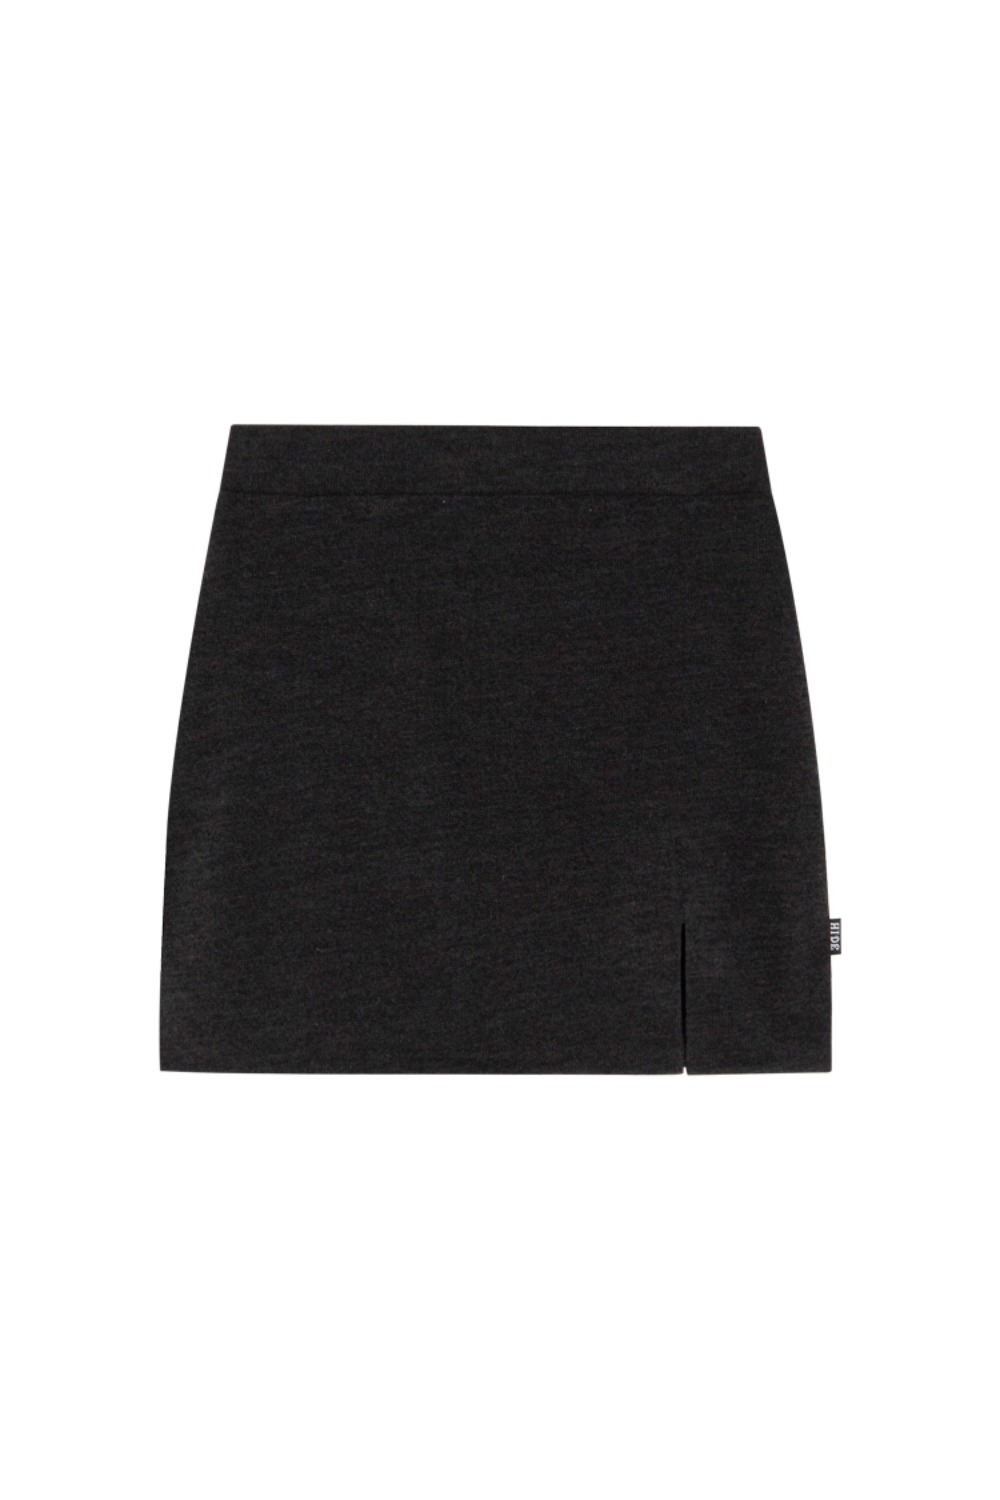 HIDE Slit Skirt BLACK